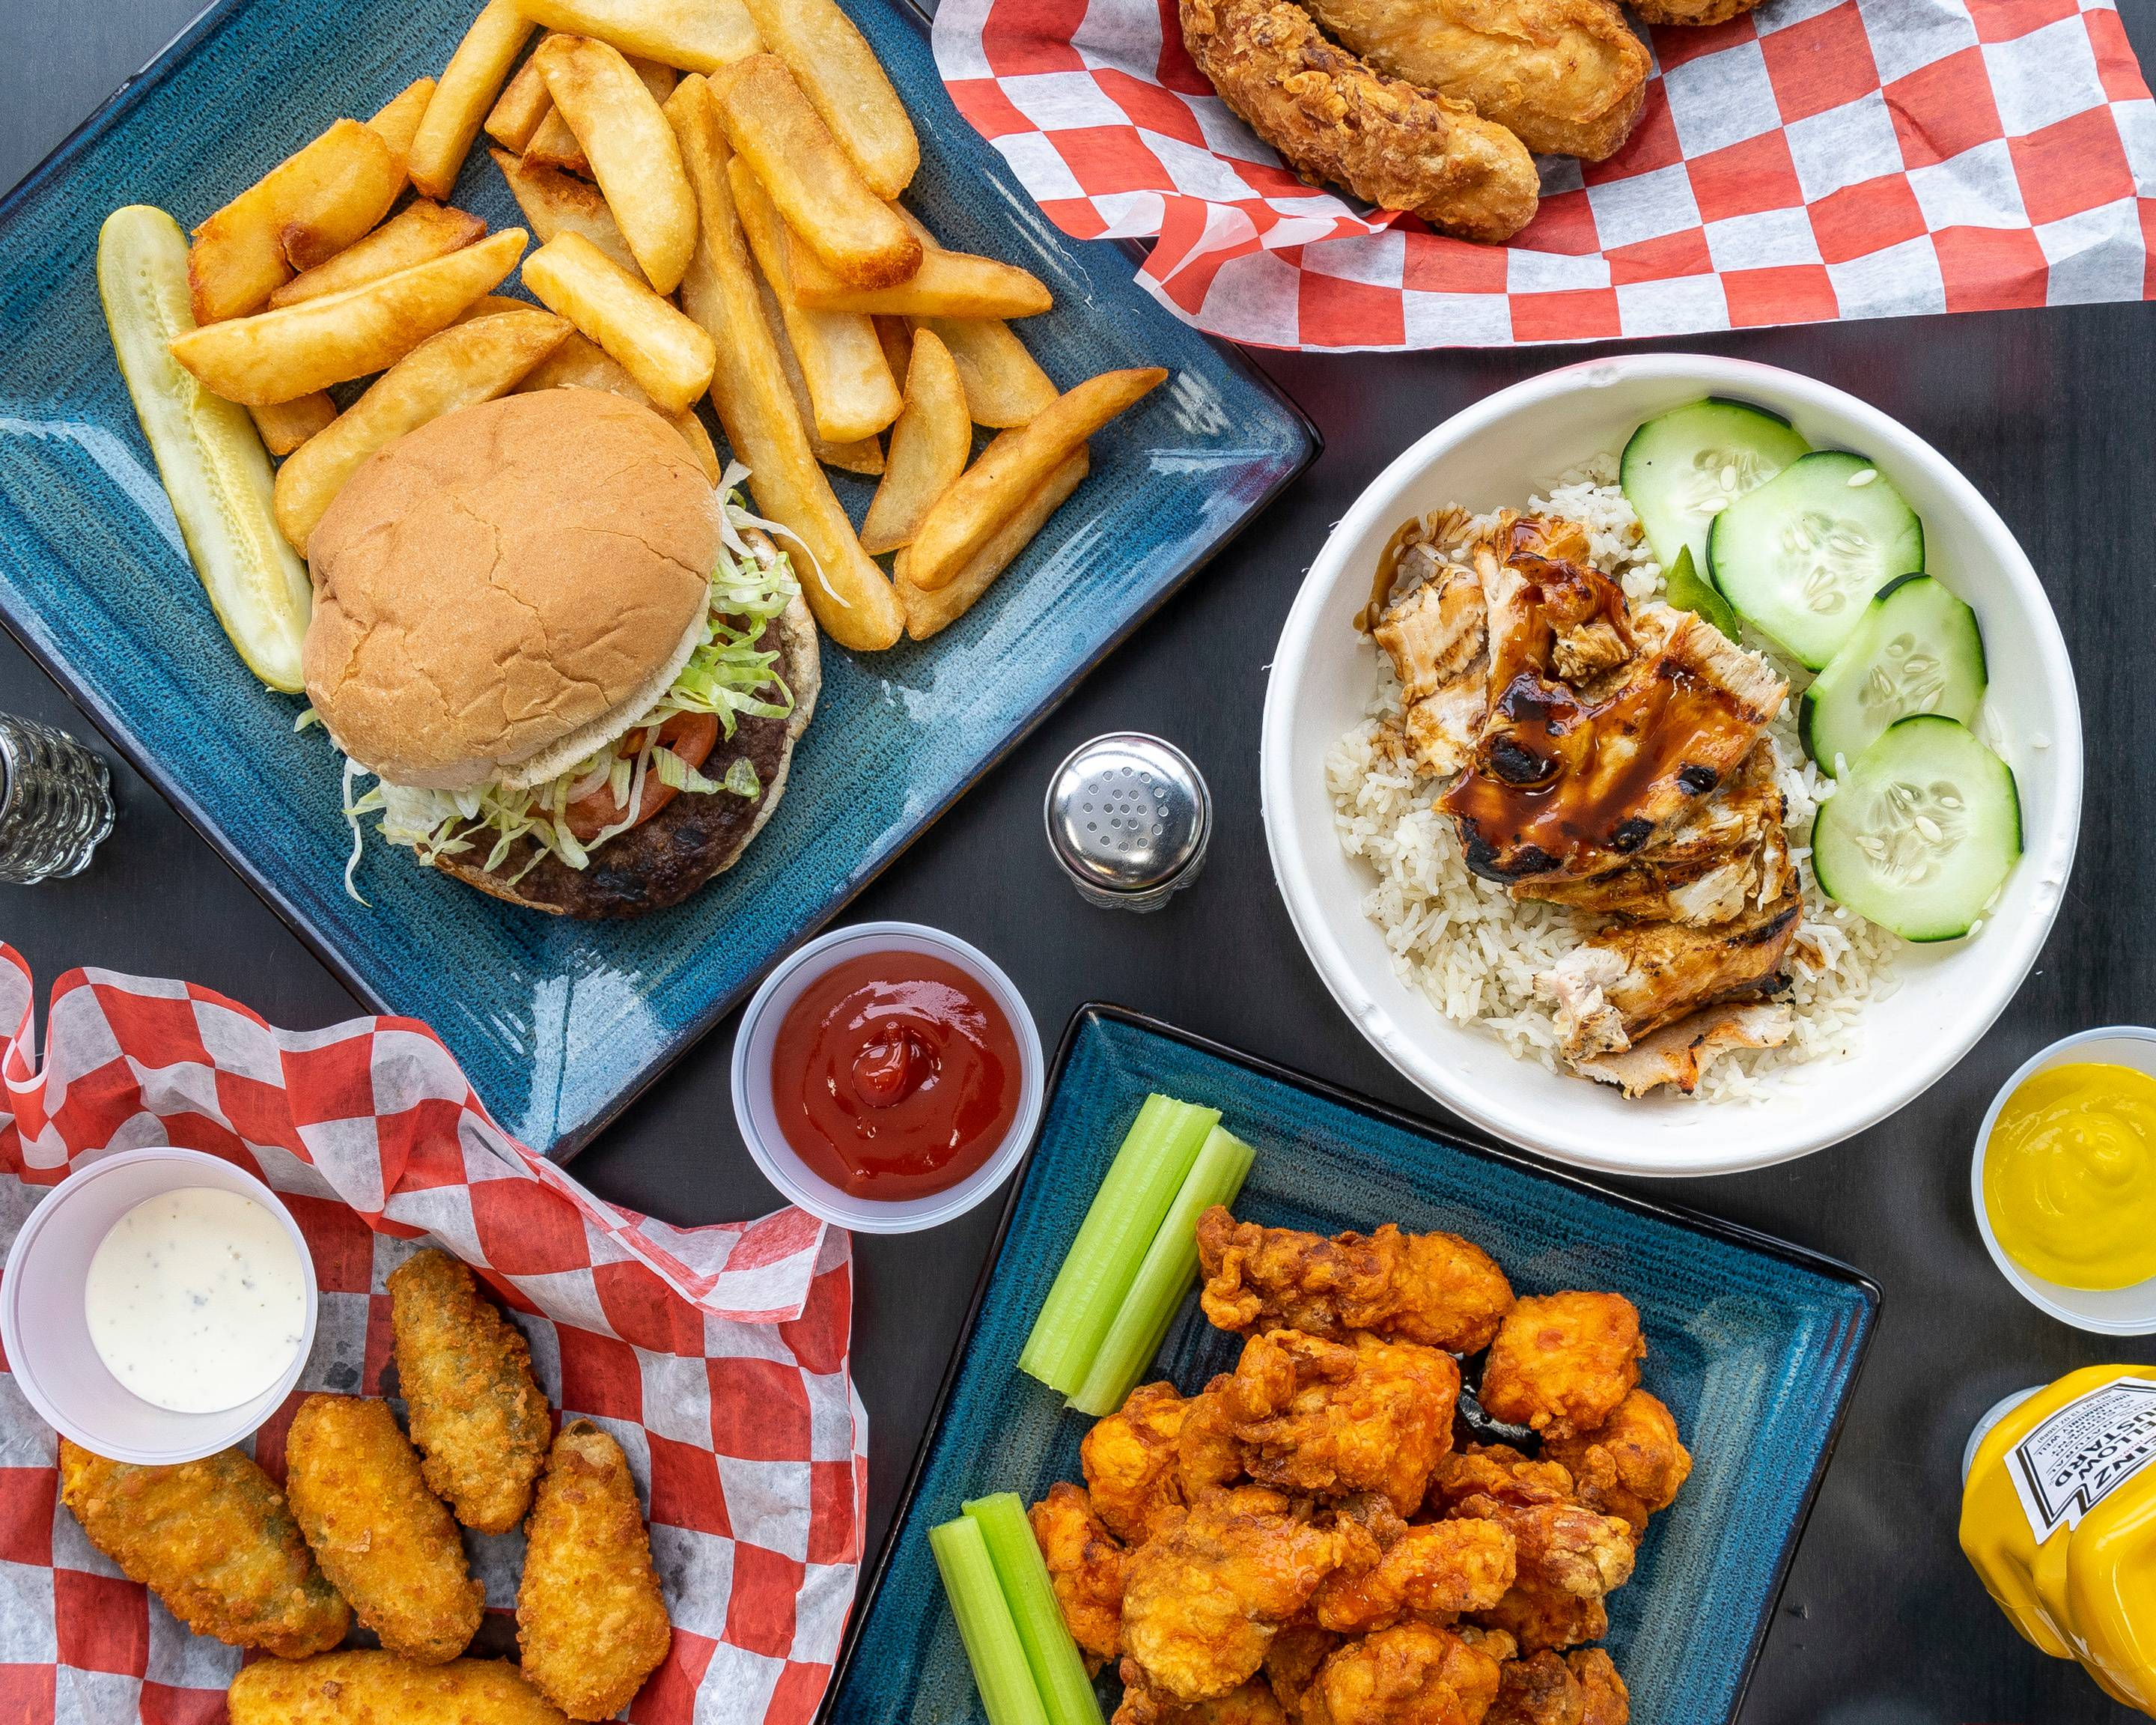 Order Uncle S Kitchen Delivery Online New Jersey Menu Prices Uber Eats